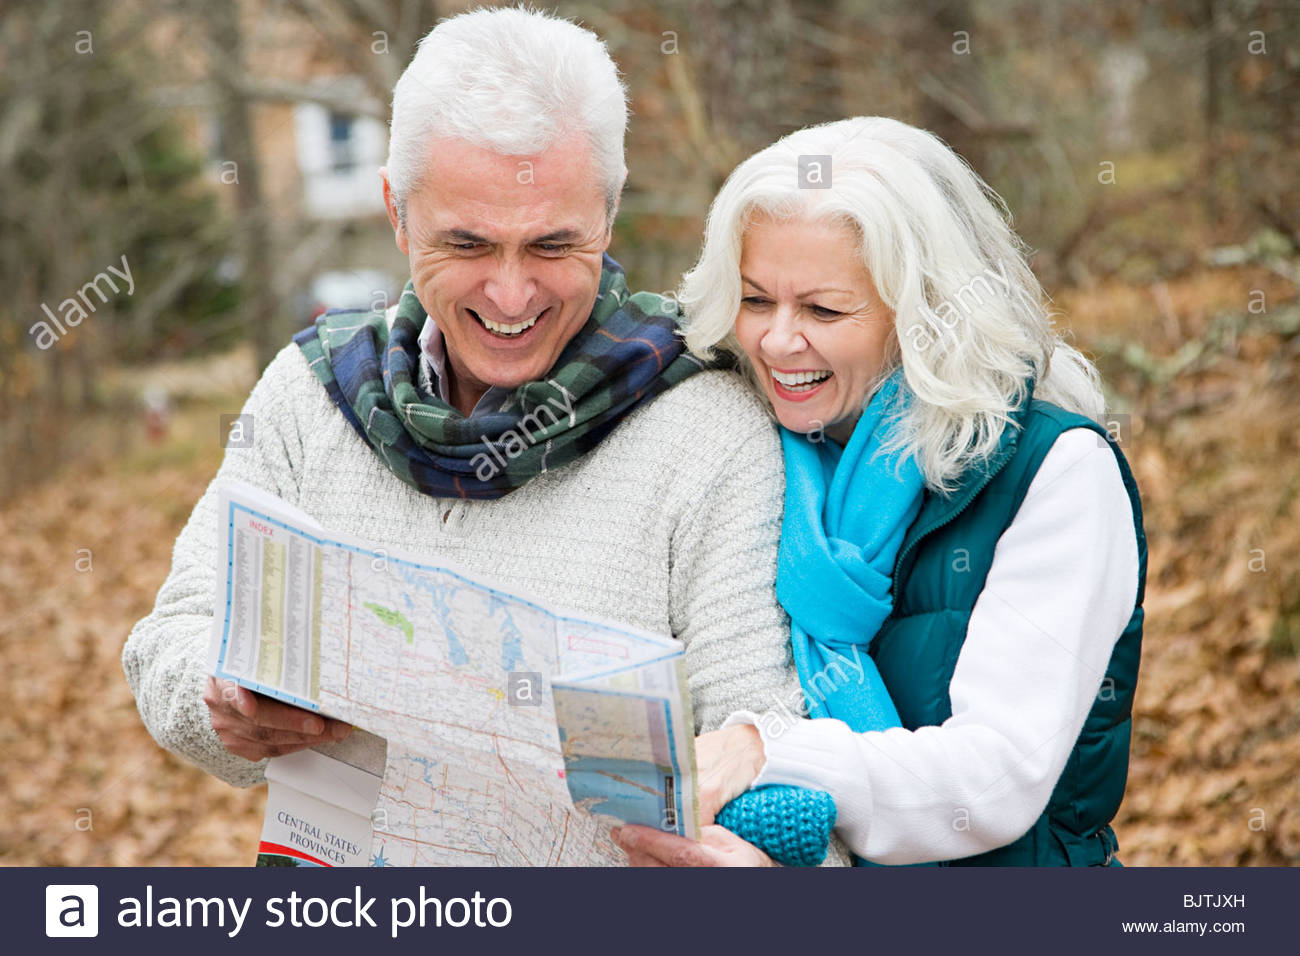 Mature couple with map Photo Stock